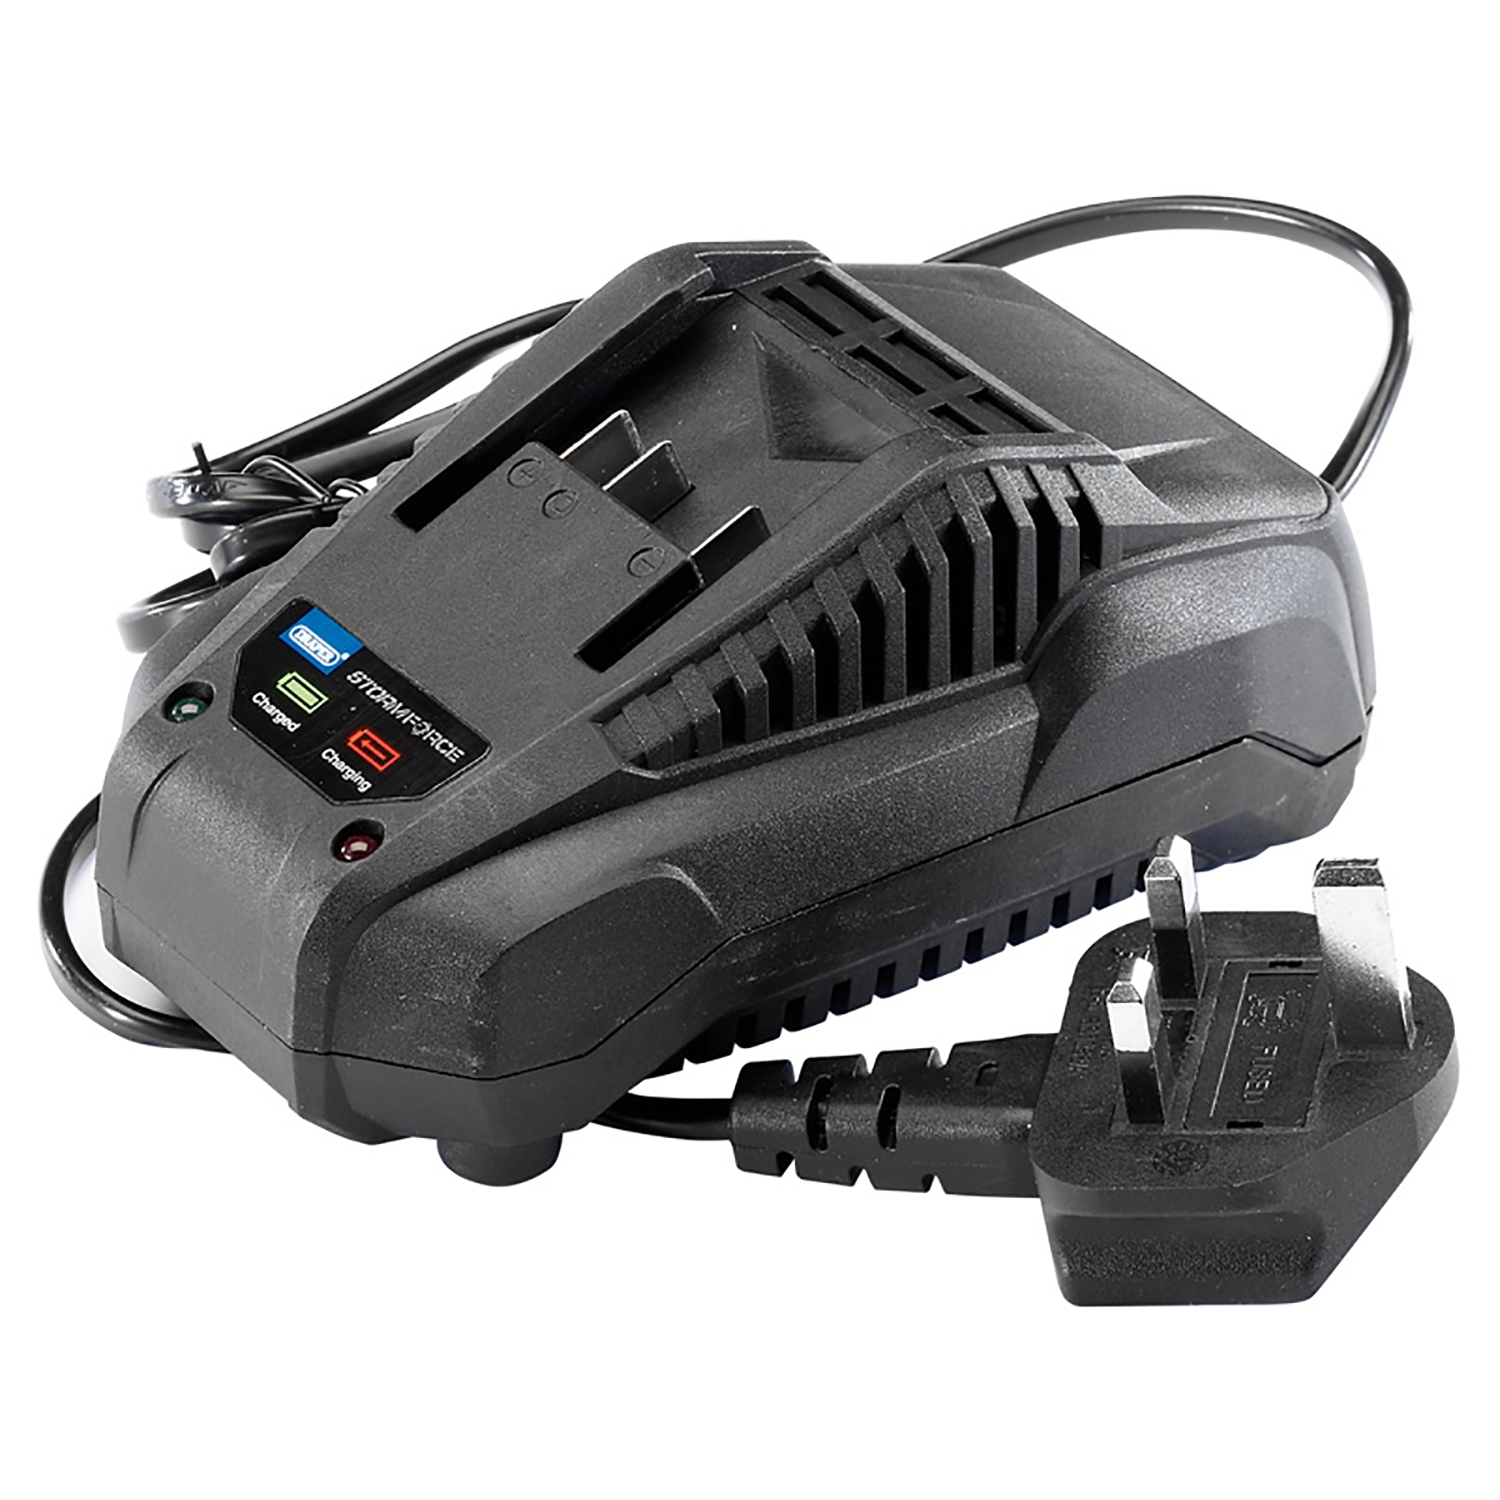 Image of Draper Storm Force Battery Charger